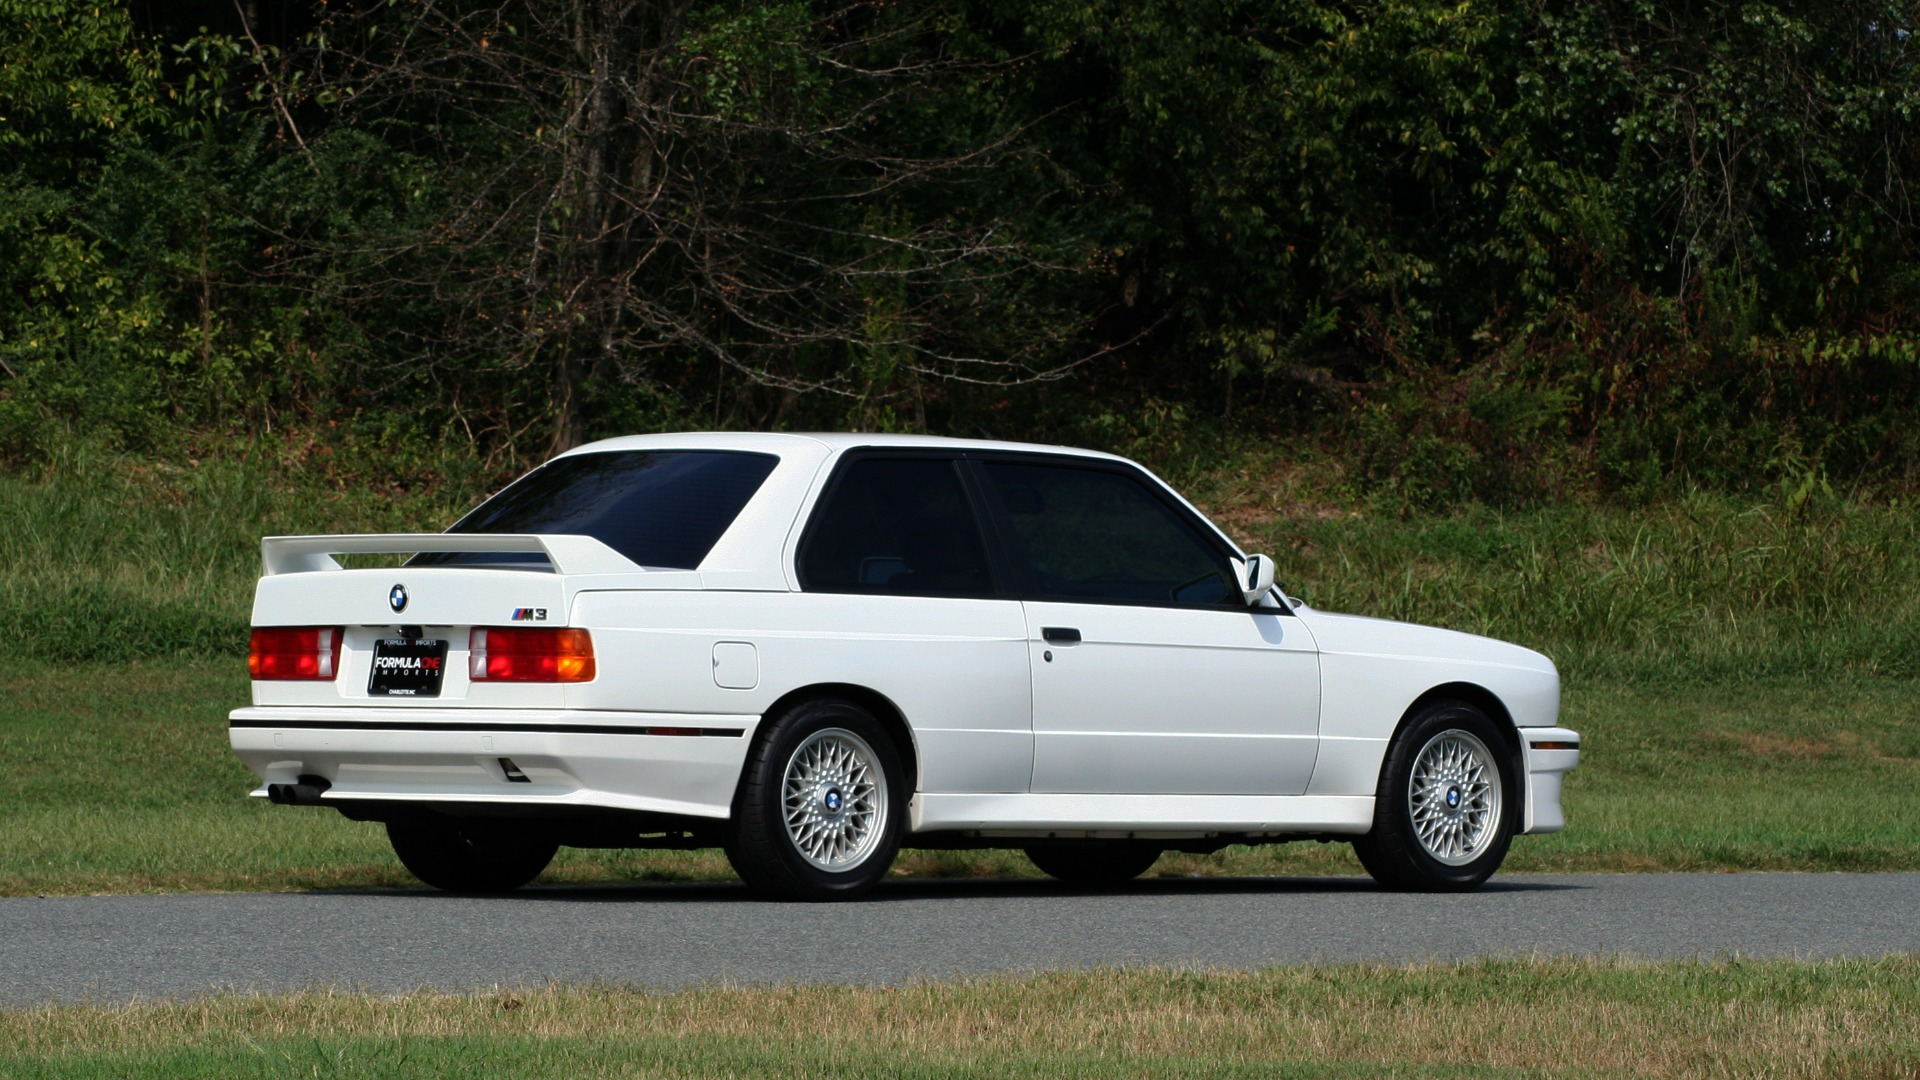 Used 1989 BMW M3 COUPE 2DR / 5-SPEED MAN / LOW MILES / SUPER CLEAN for sale Sold at Formula Imports in Charlotte NC 28227 9